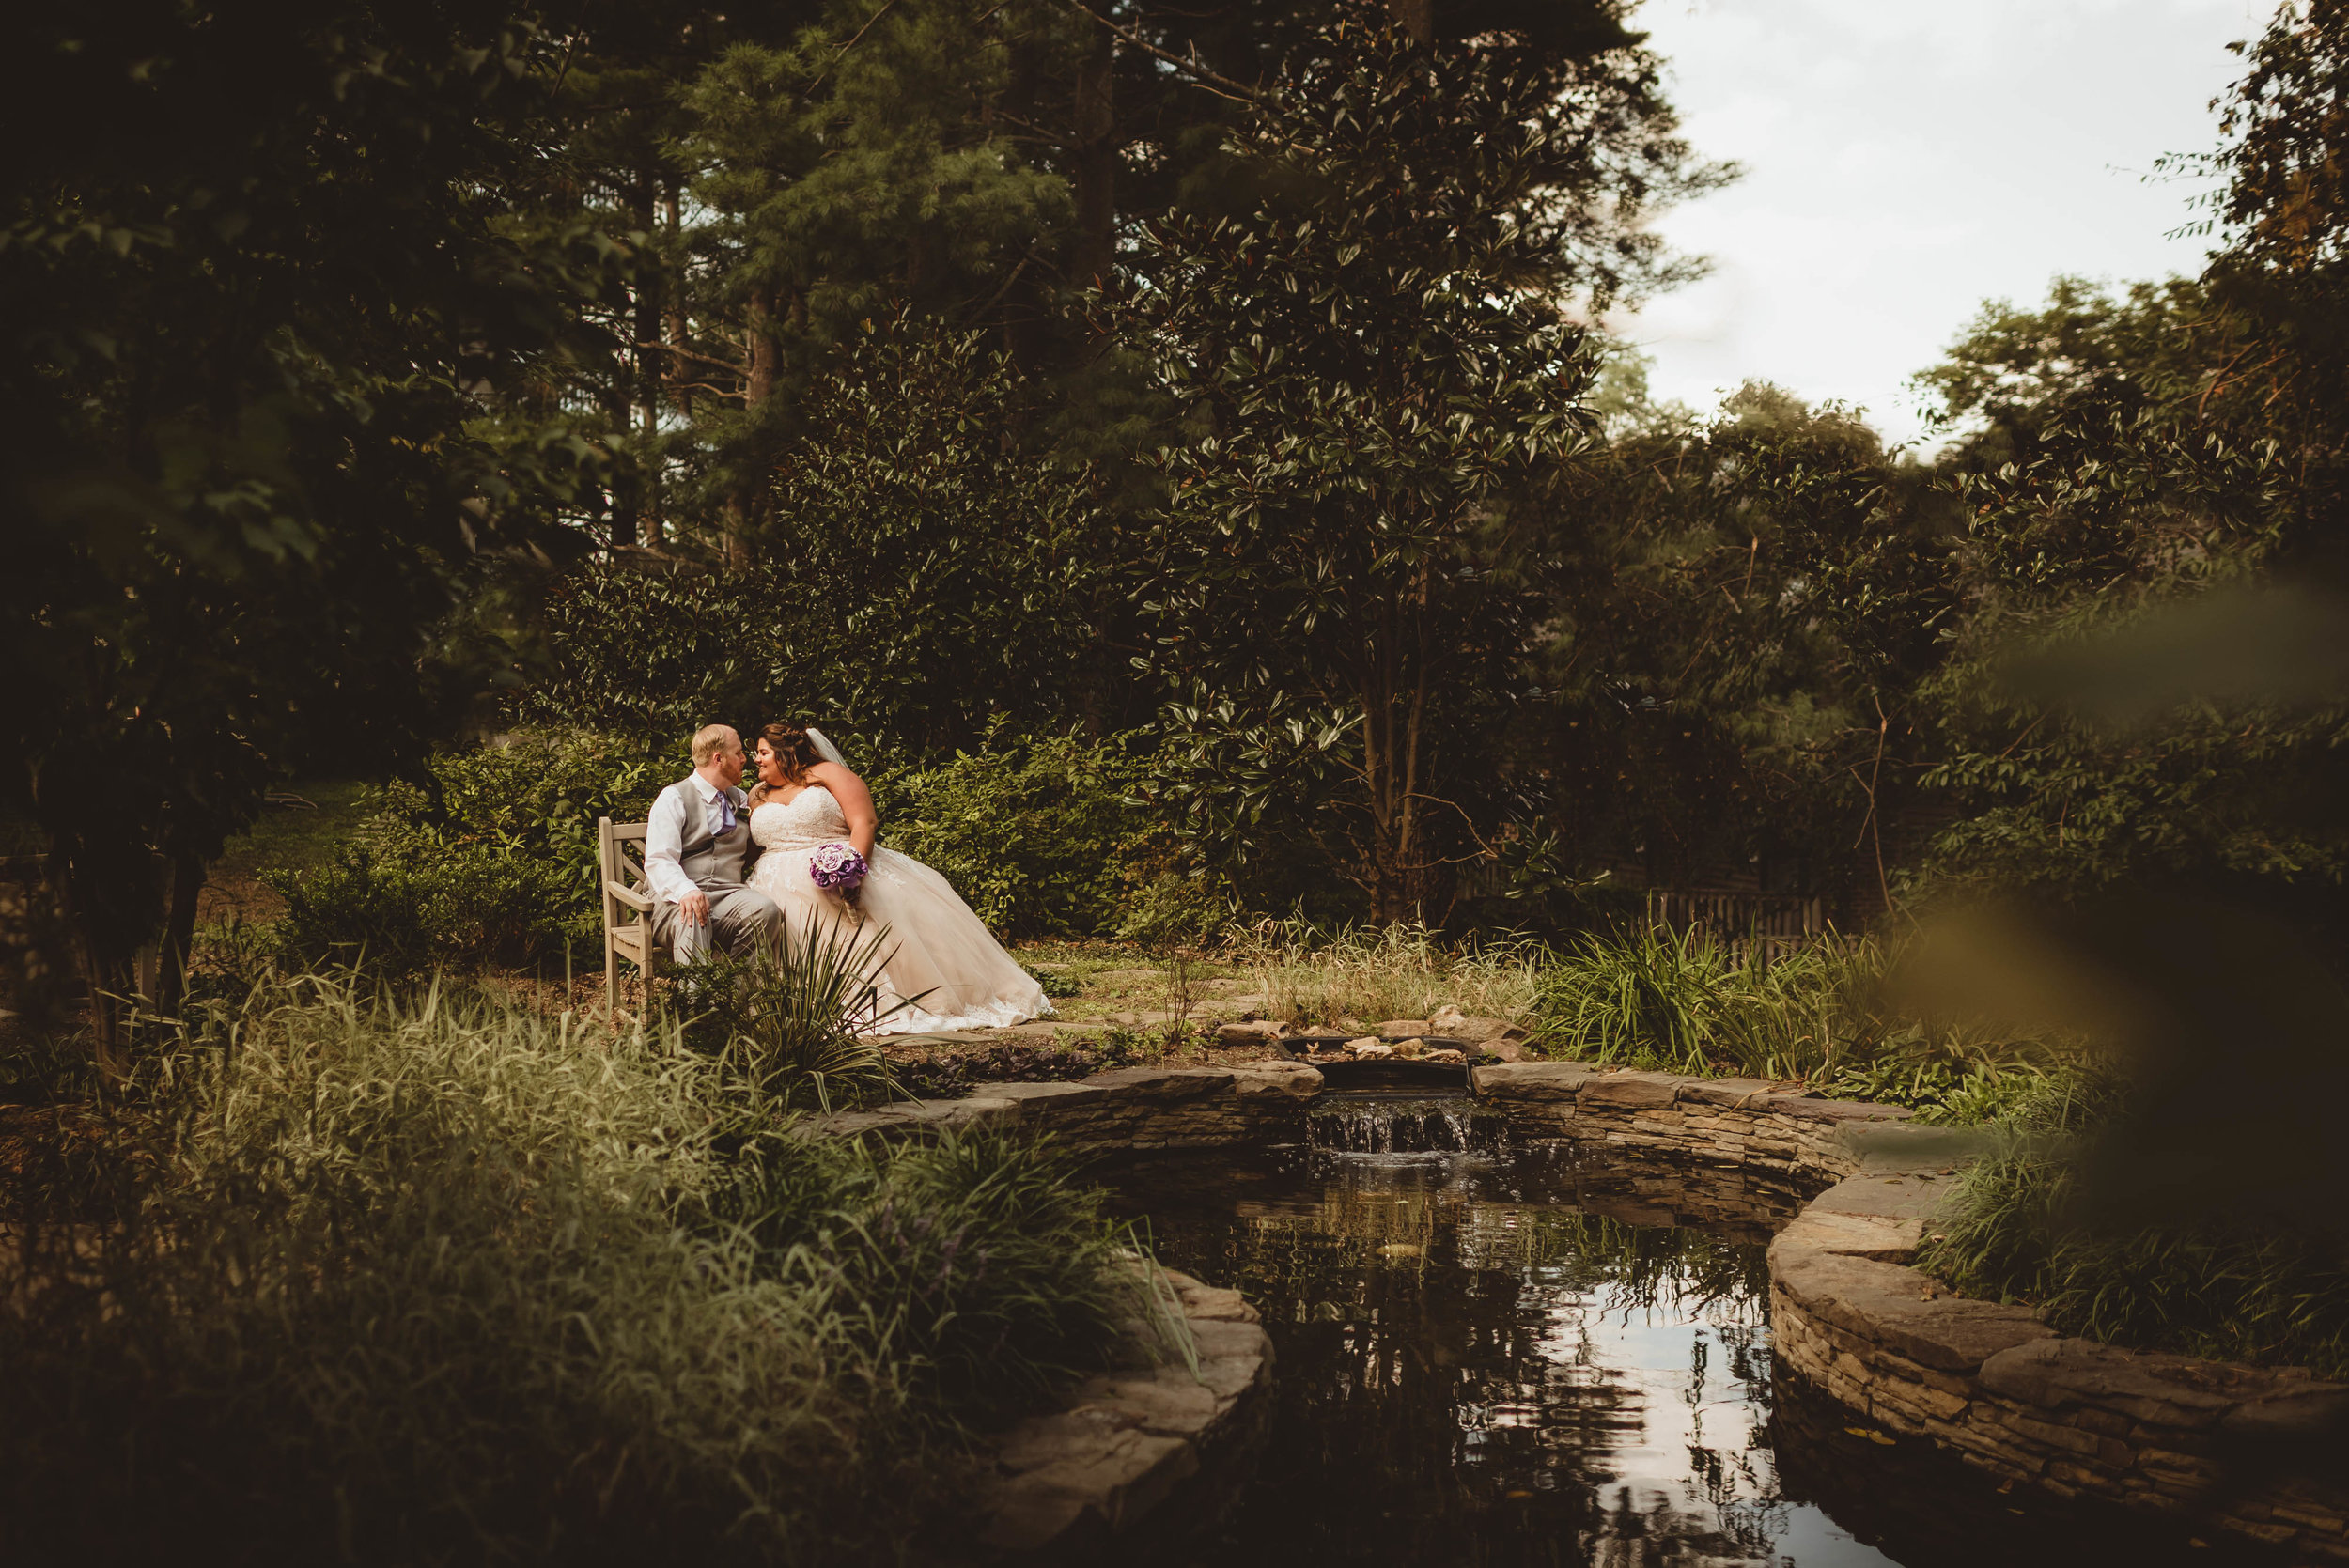 brittney-nestle-wedding-photography-olivers-carriage-house-luck.jpg